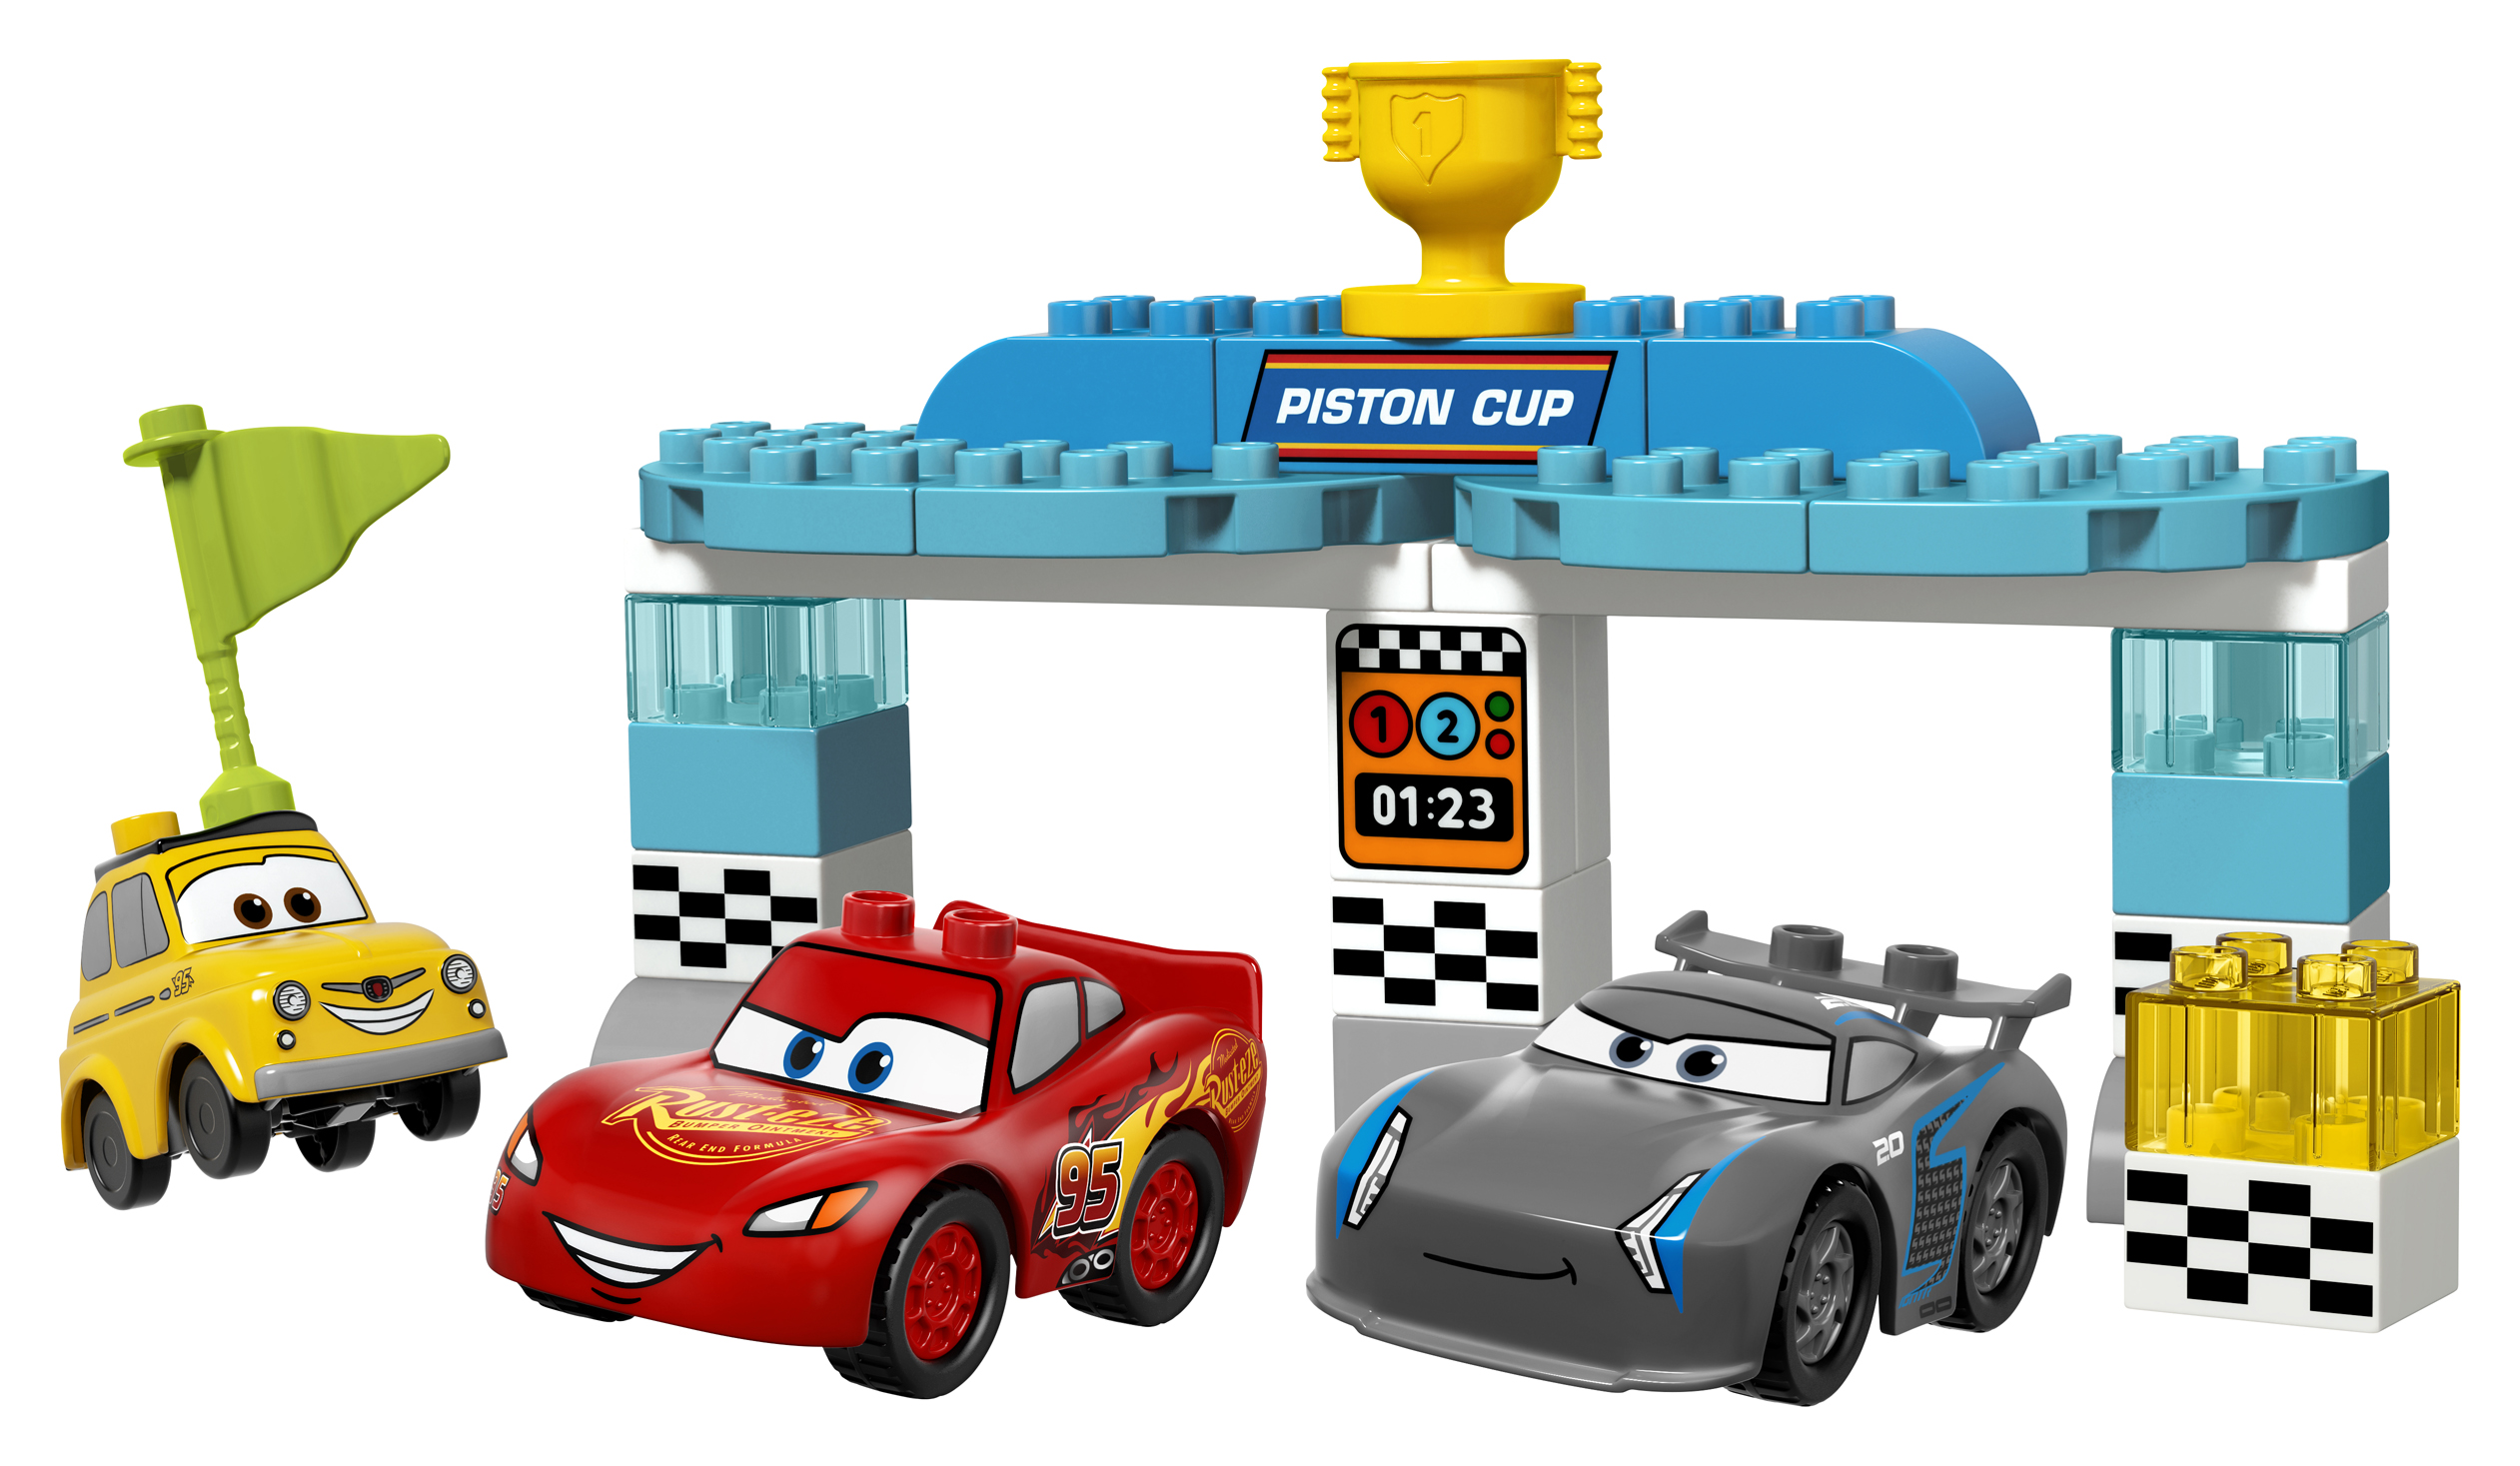 Race Car clipart lego DUPLO Sets From LEGO Bricks